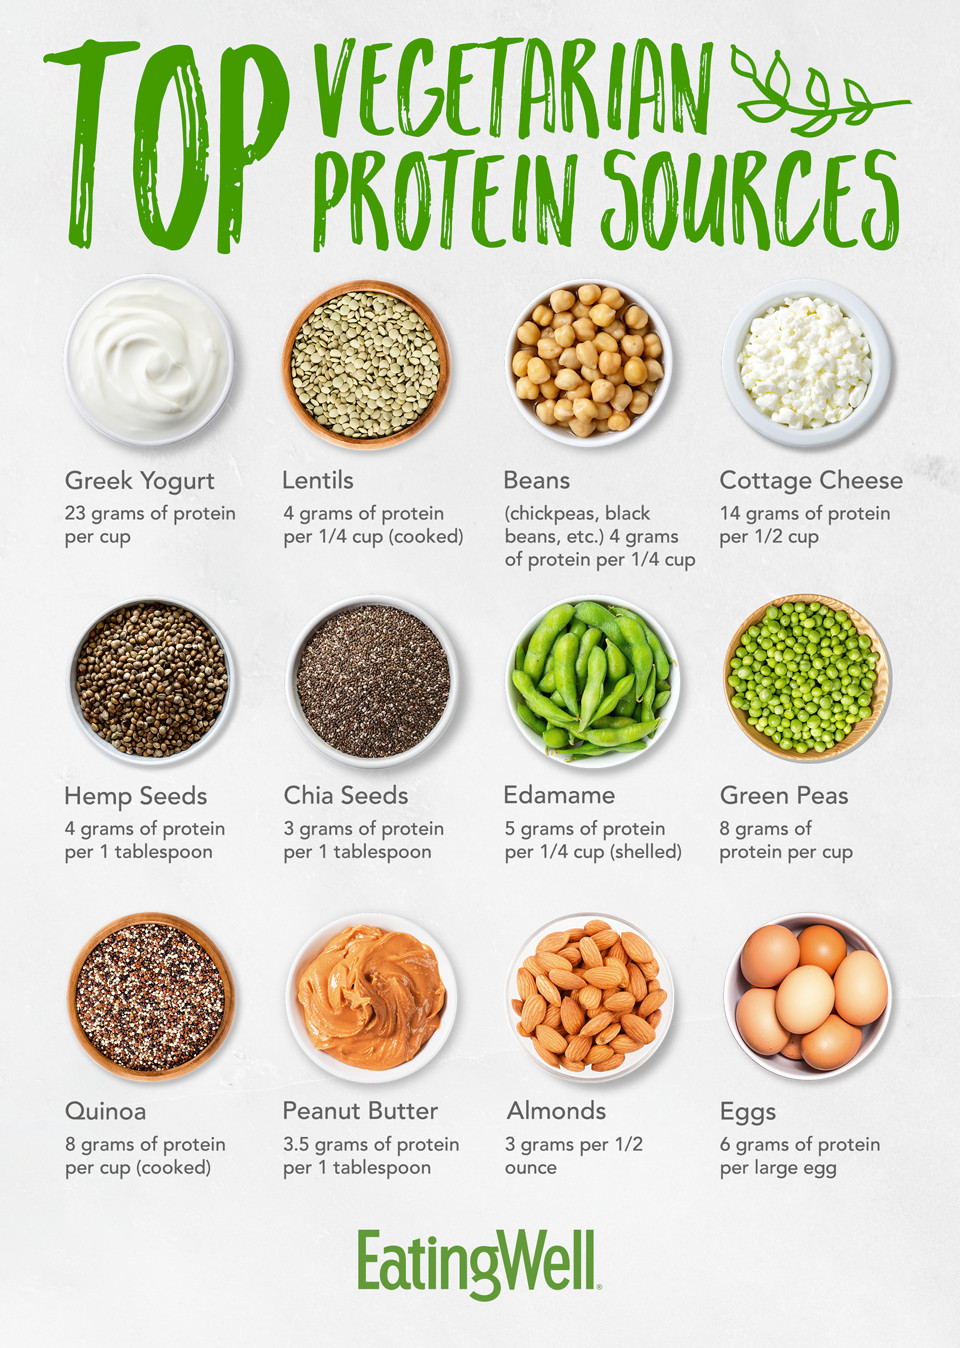 Vegetarian Sources Of Protein  Top Ve arian Protein Sources EatingWell